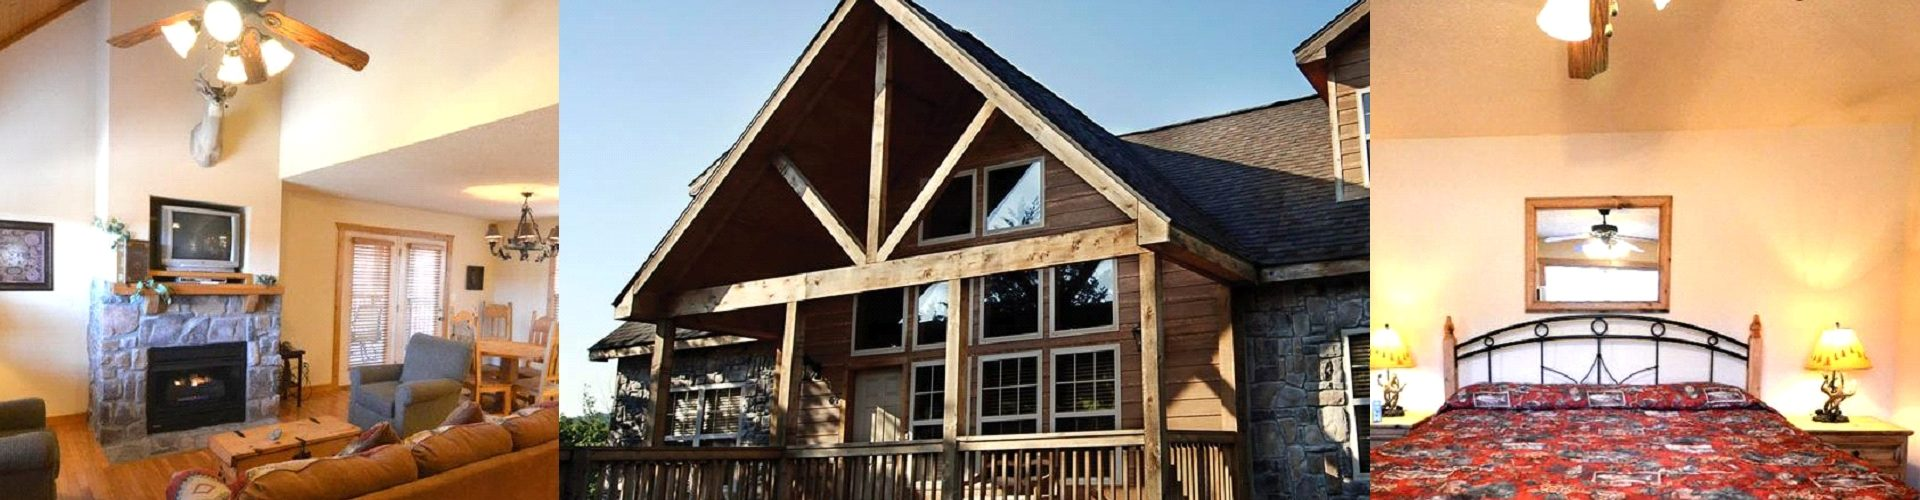 Book now for 7 bedroom cabins in branson mo